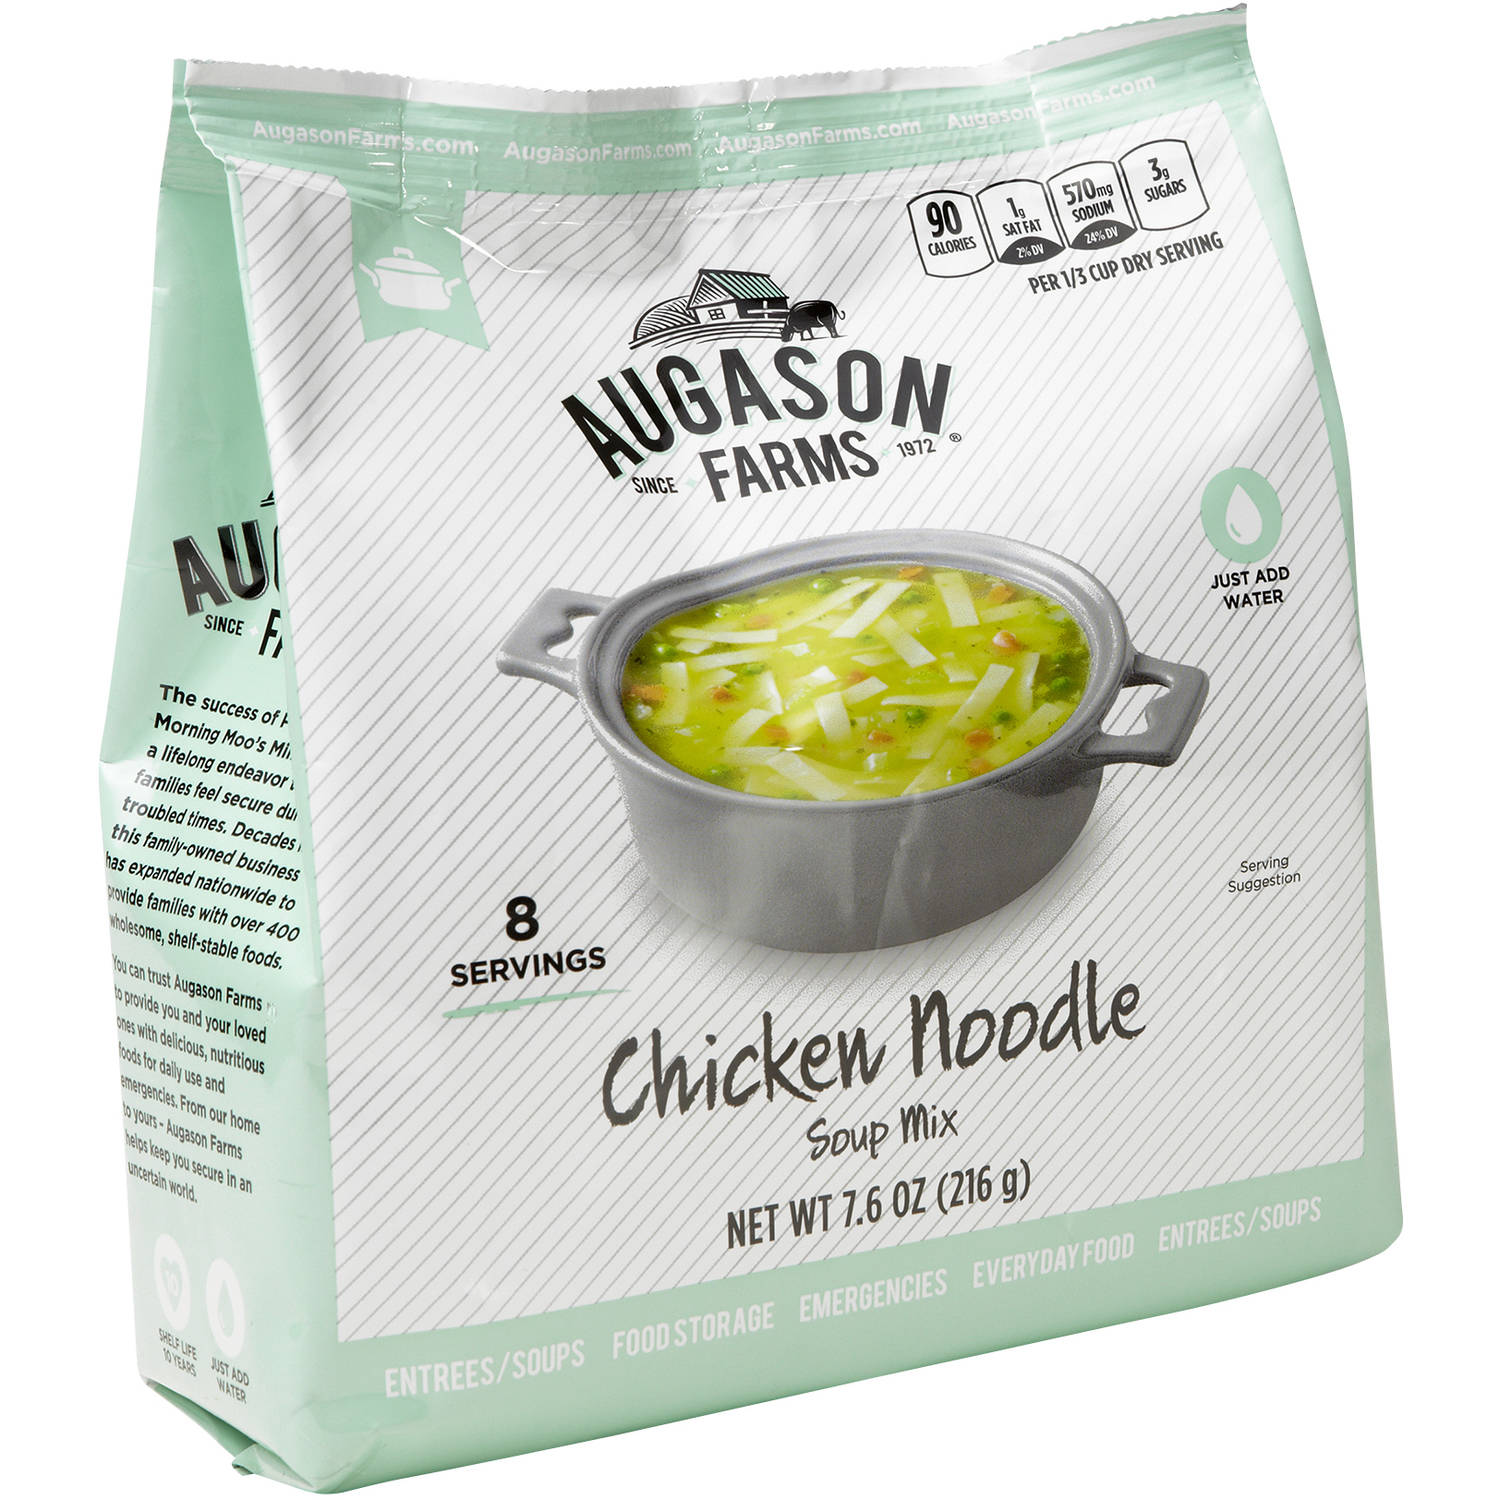 Augason Farms Chicken Noodle Soup Mix, 7.6 oz